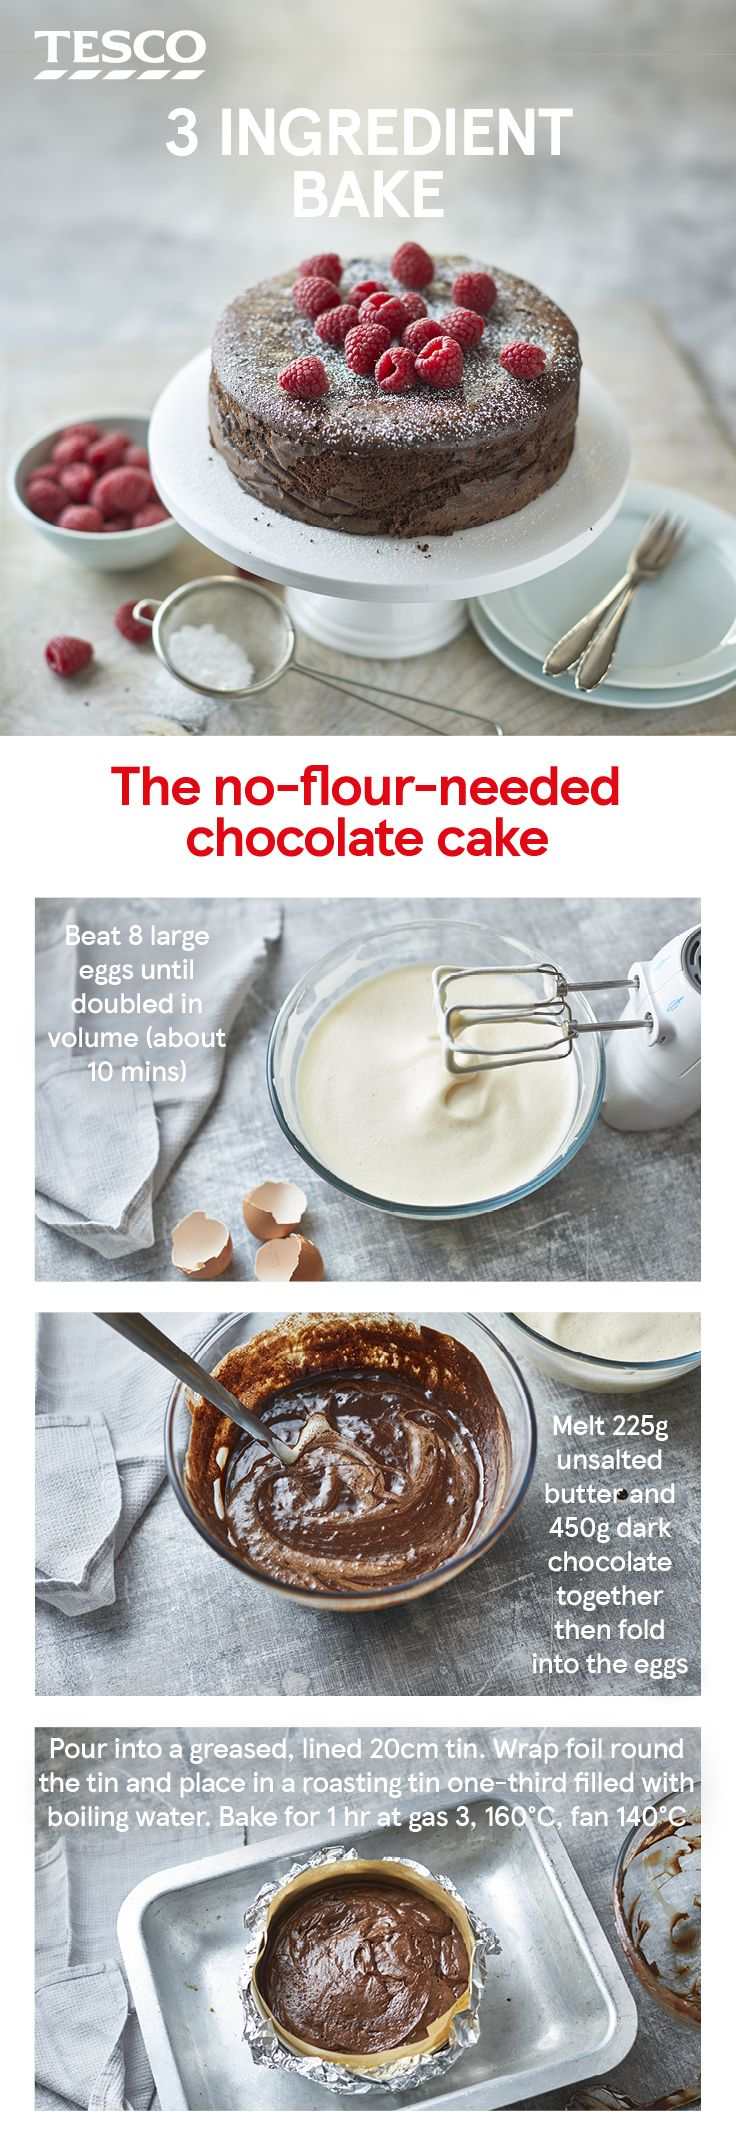 When only chocolate cake will do, this three ingredient recipe will be a life-saver. Made with just eggs, chocolate and butter, this dense, fudgy cake is so decadent, you won't believe how simple it is to make.   Tesco